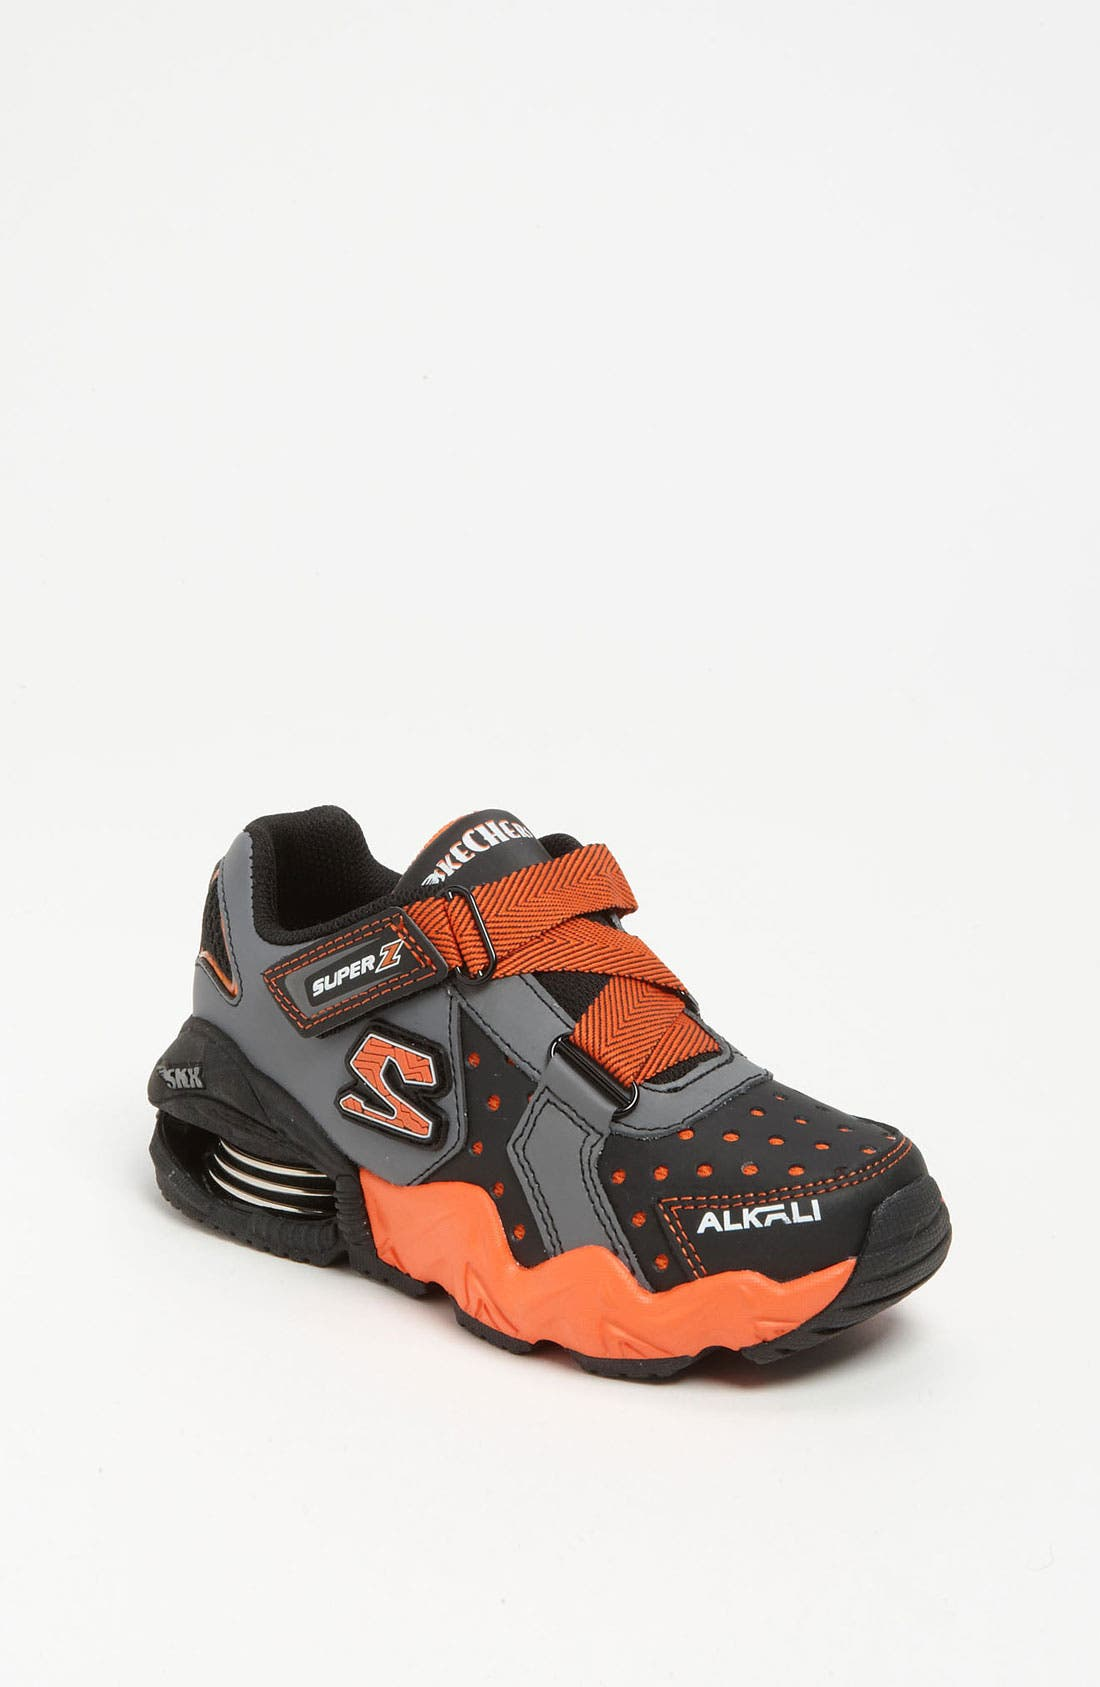 Main Image - SKECHERS 'Alkali' Sneaker (Toddler, Little Kid & Big Kid)